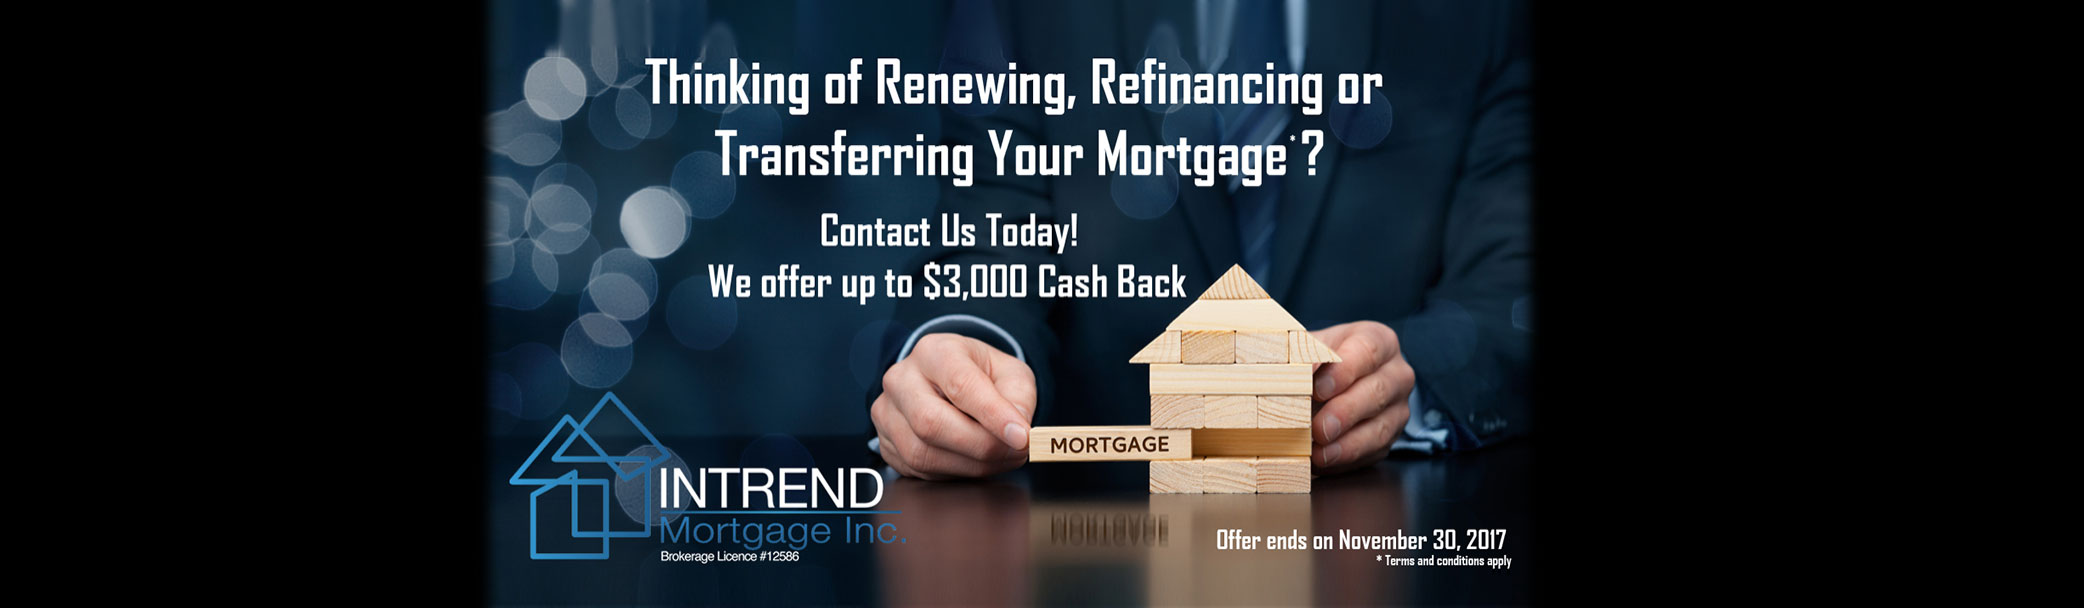 intrend-mortgage-cash-back-promotion-slider